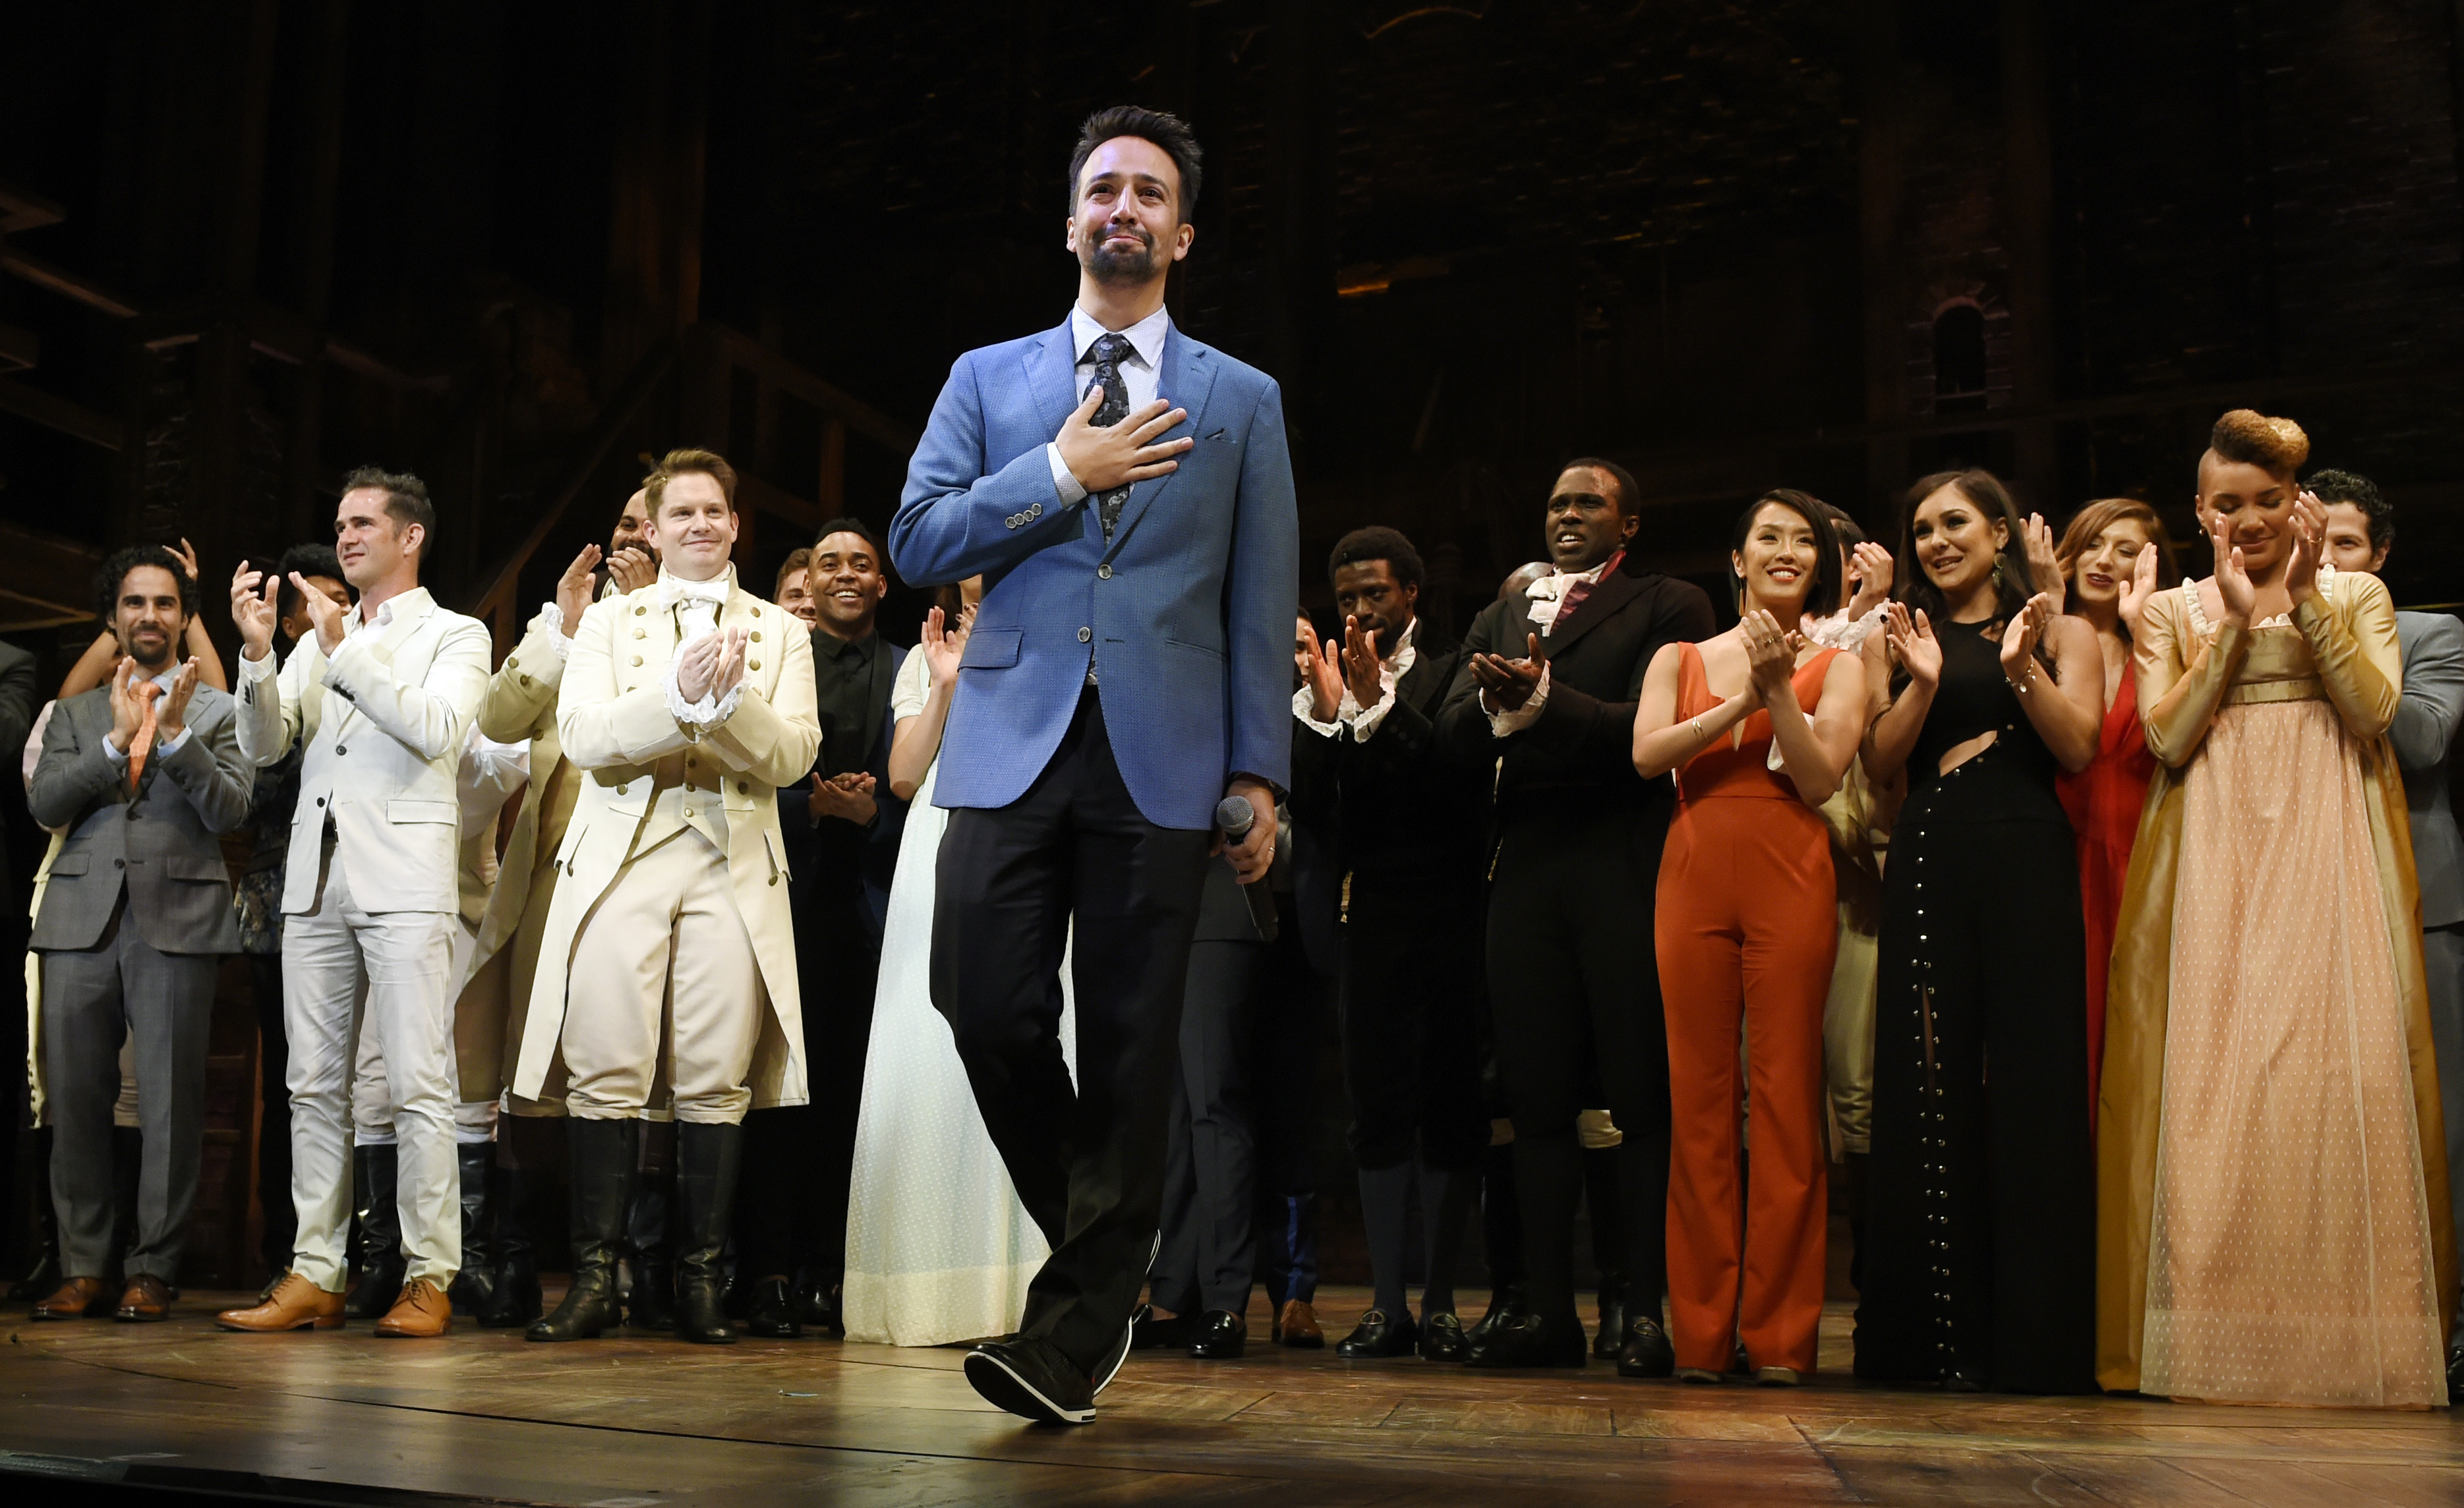 Lin-Manuel Miranda, creator of Hamilton: An American Musical, on the opening night of the Los Angeles run of the show at the Pantages Theatre on Aug. 16, 2017.